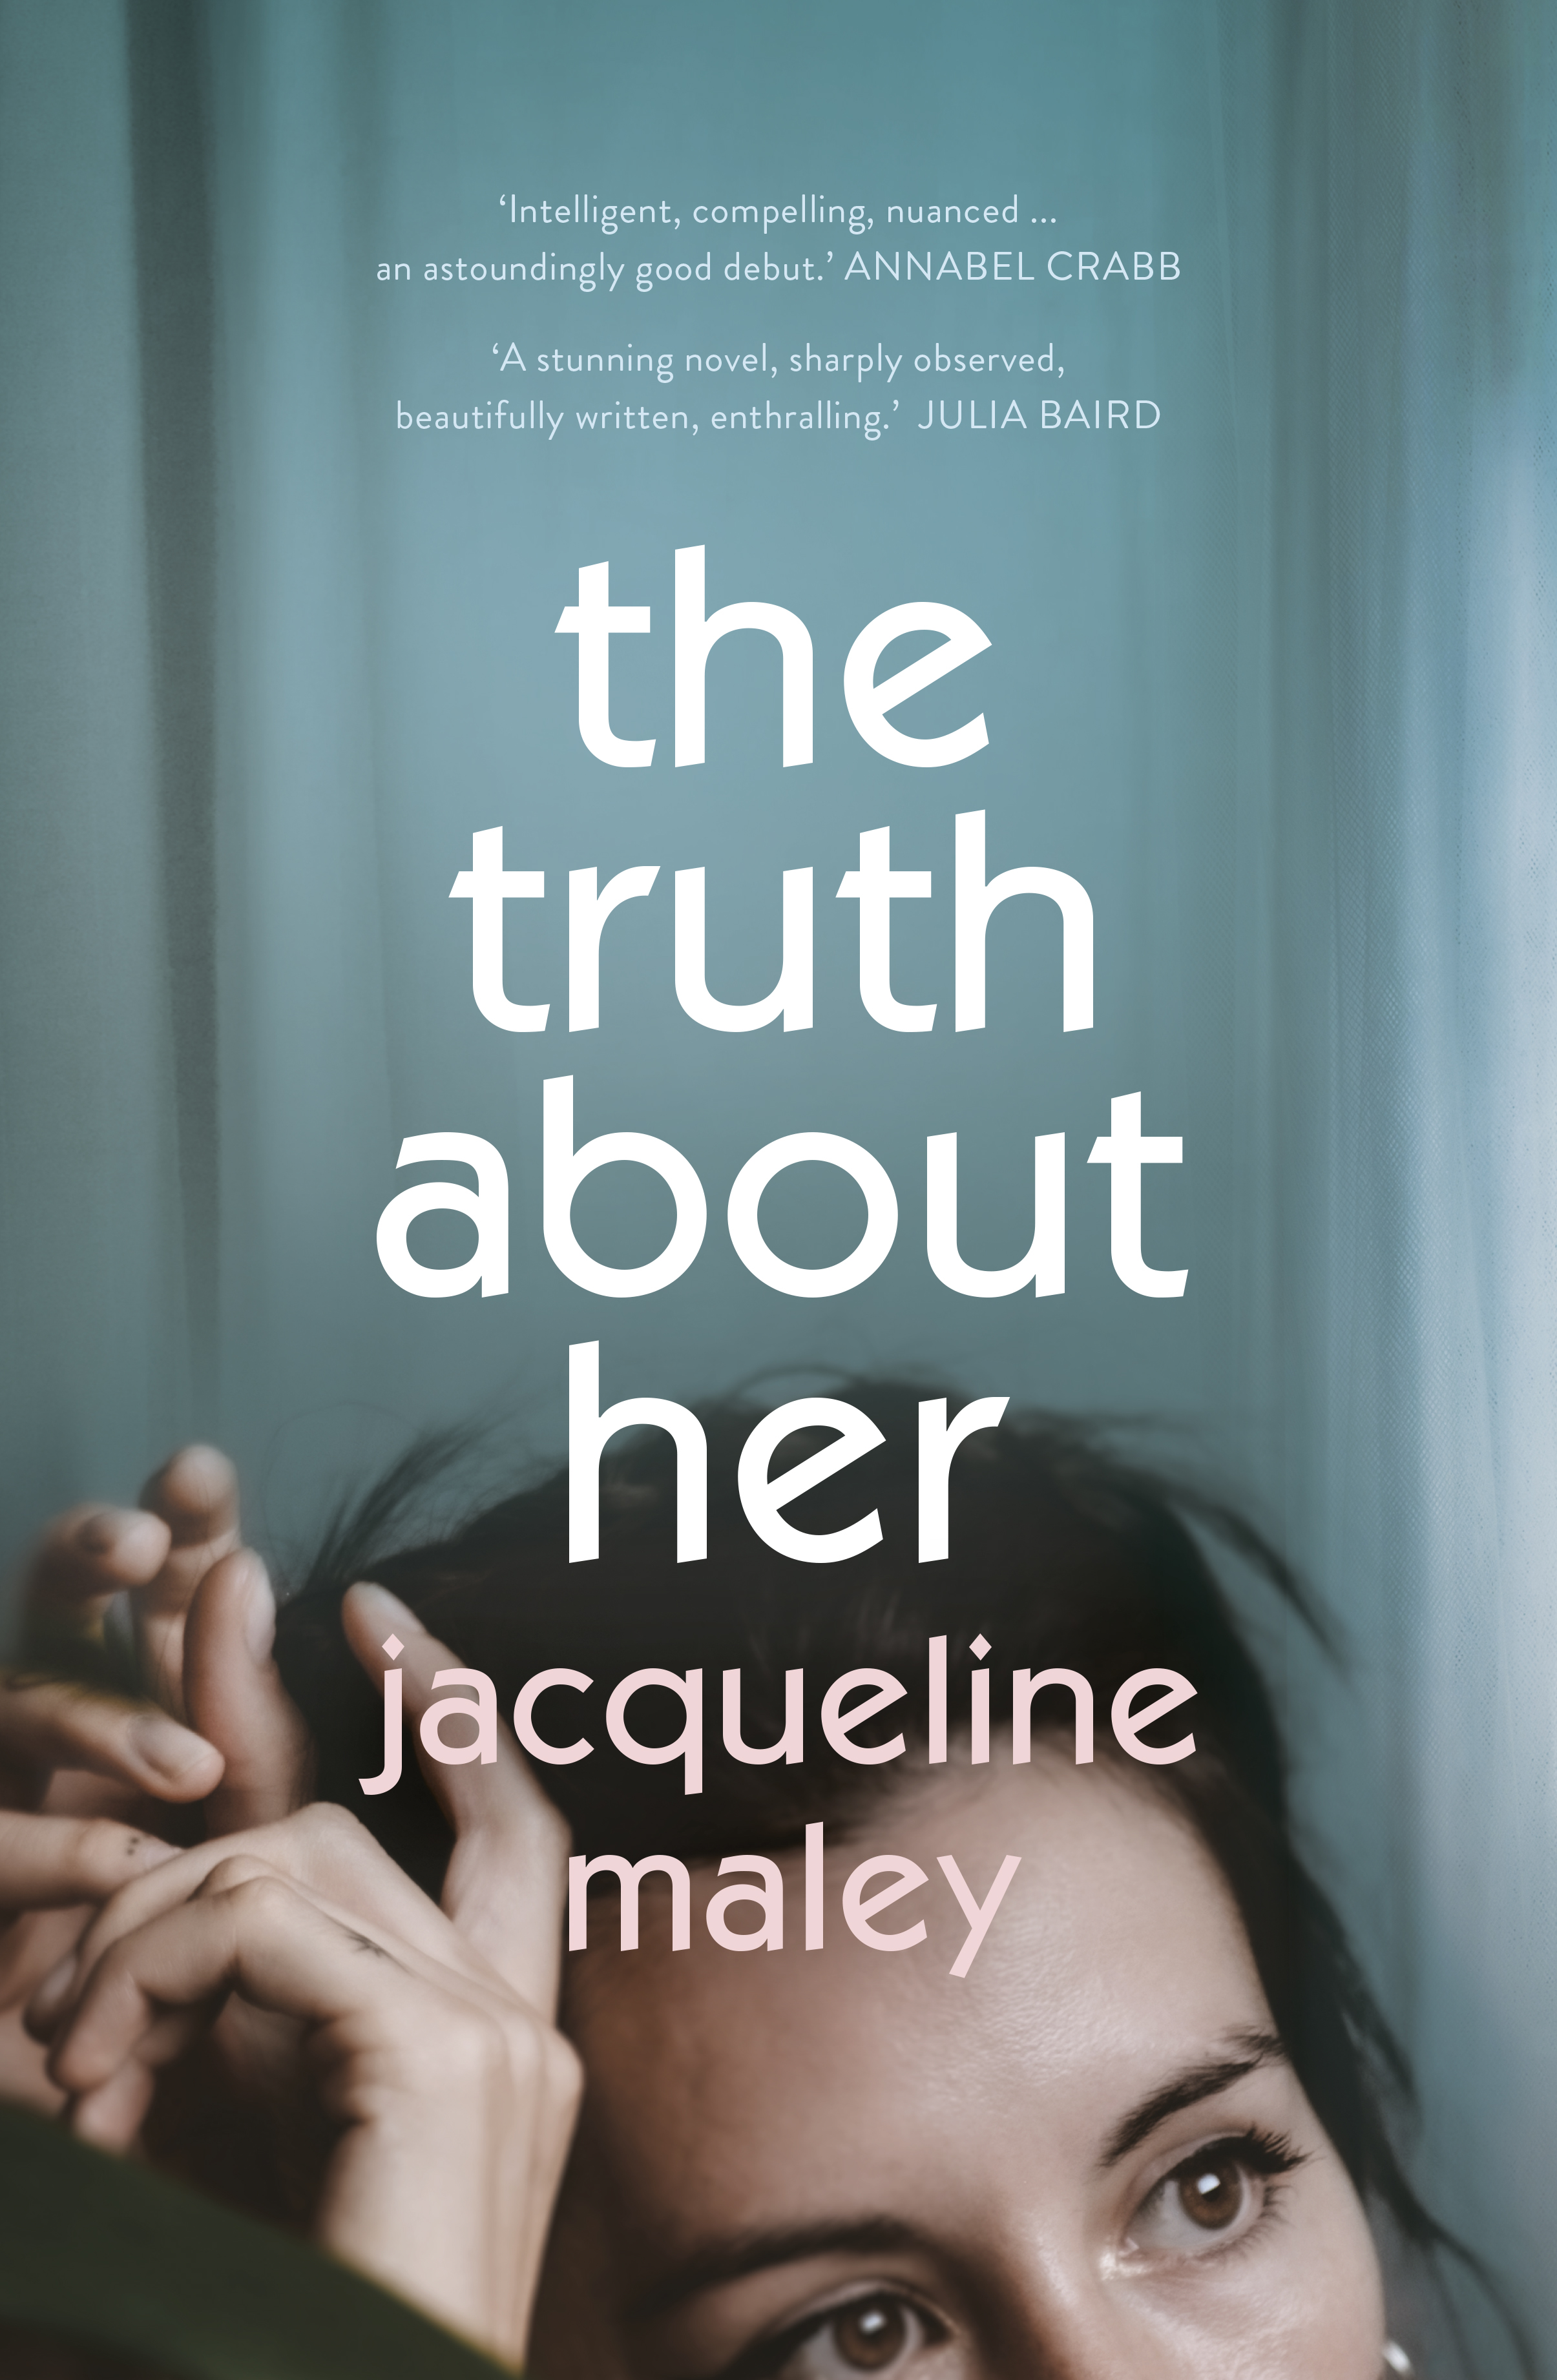 The Truth About Her Jacqueline Maley